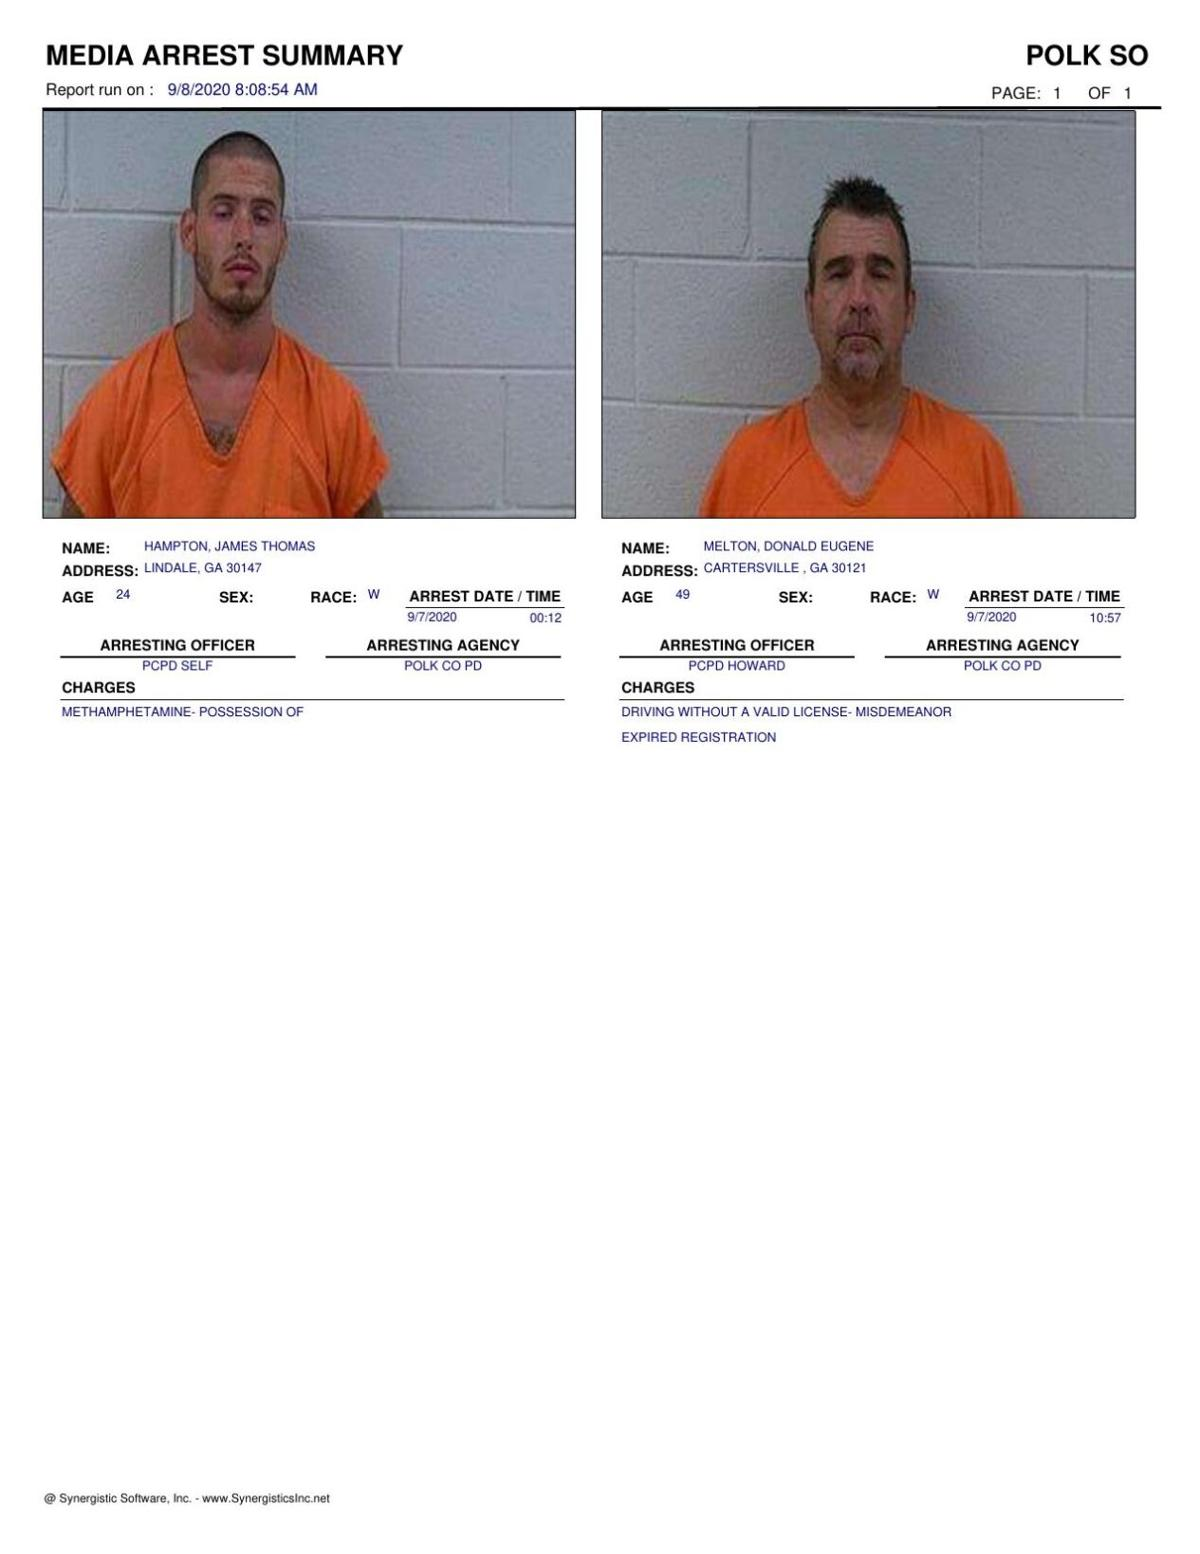 Polk County Jail Report for Tuesday, Sept. 8